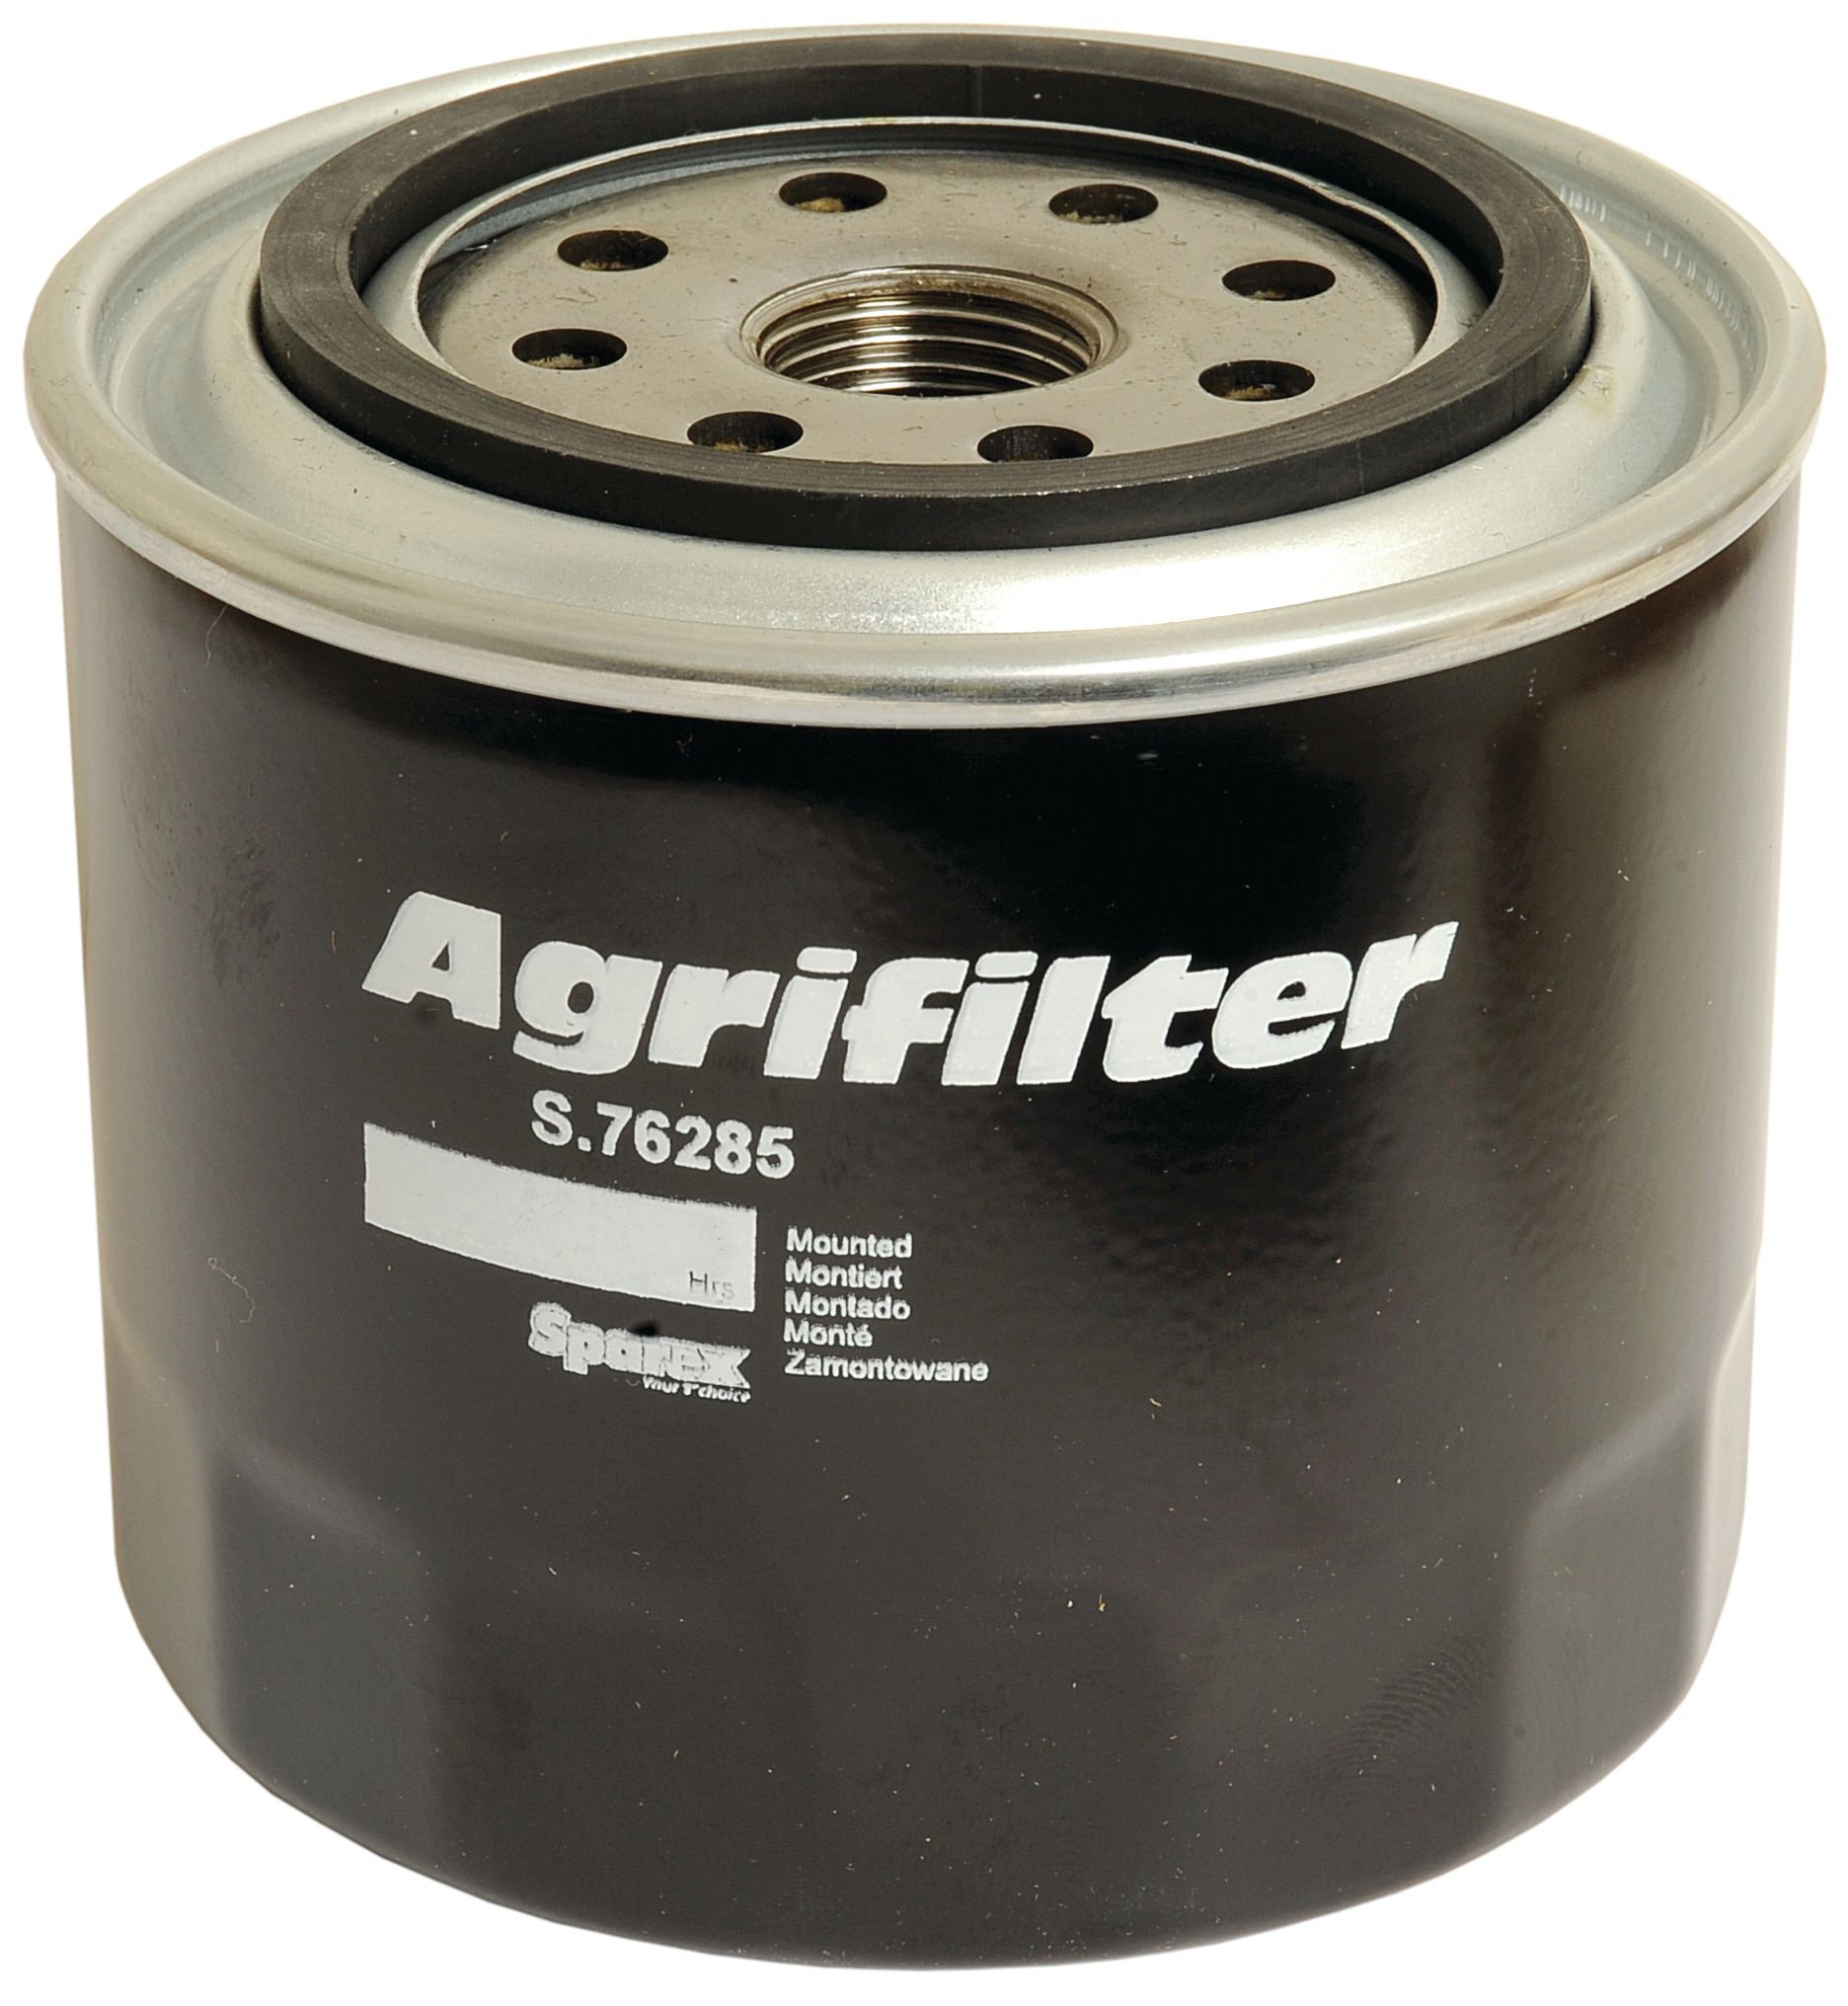 DAVID BROWN OIL FILTER 76285